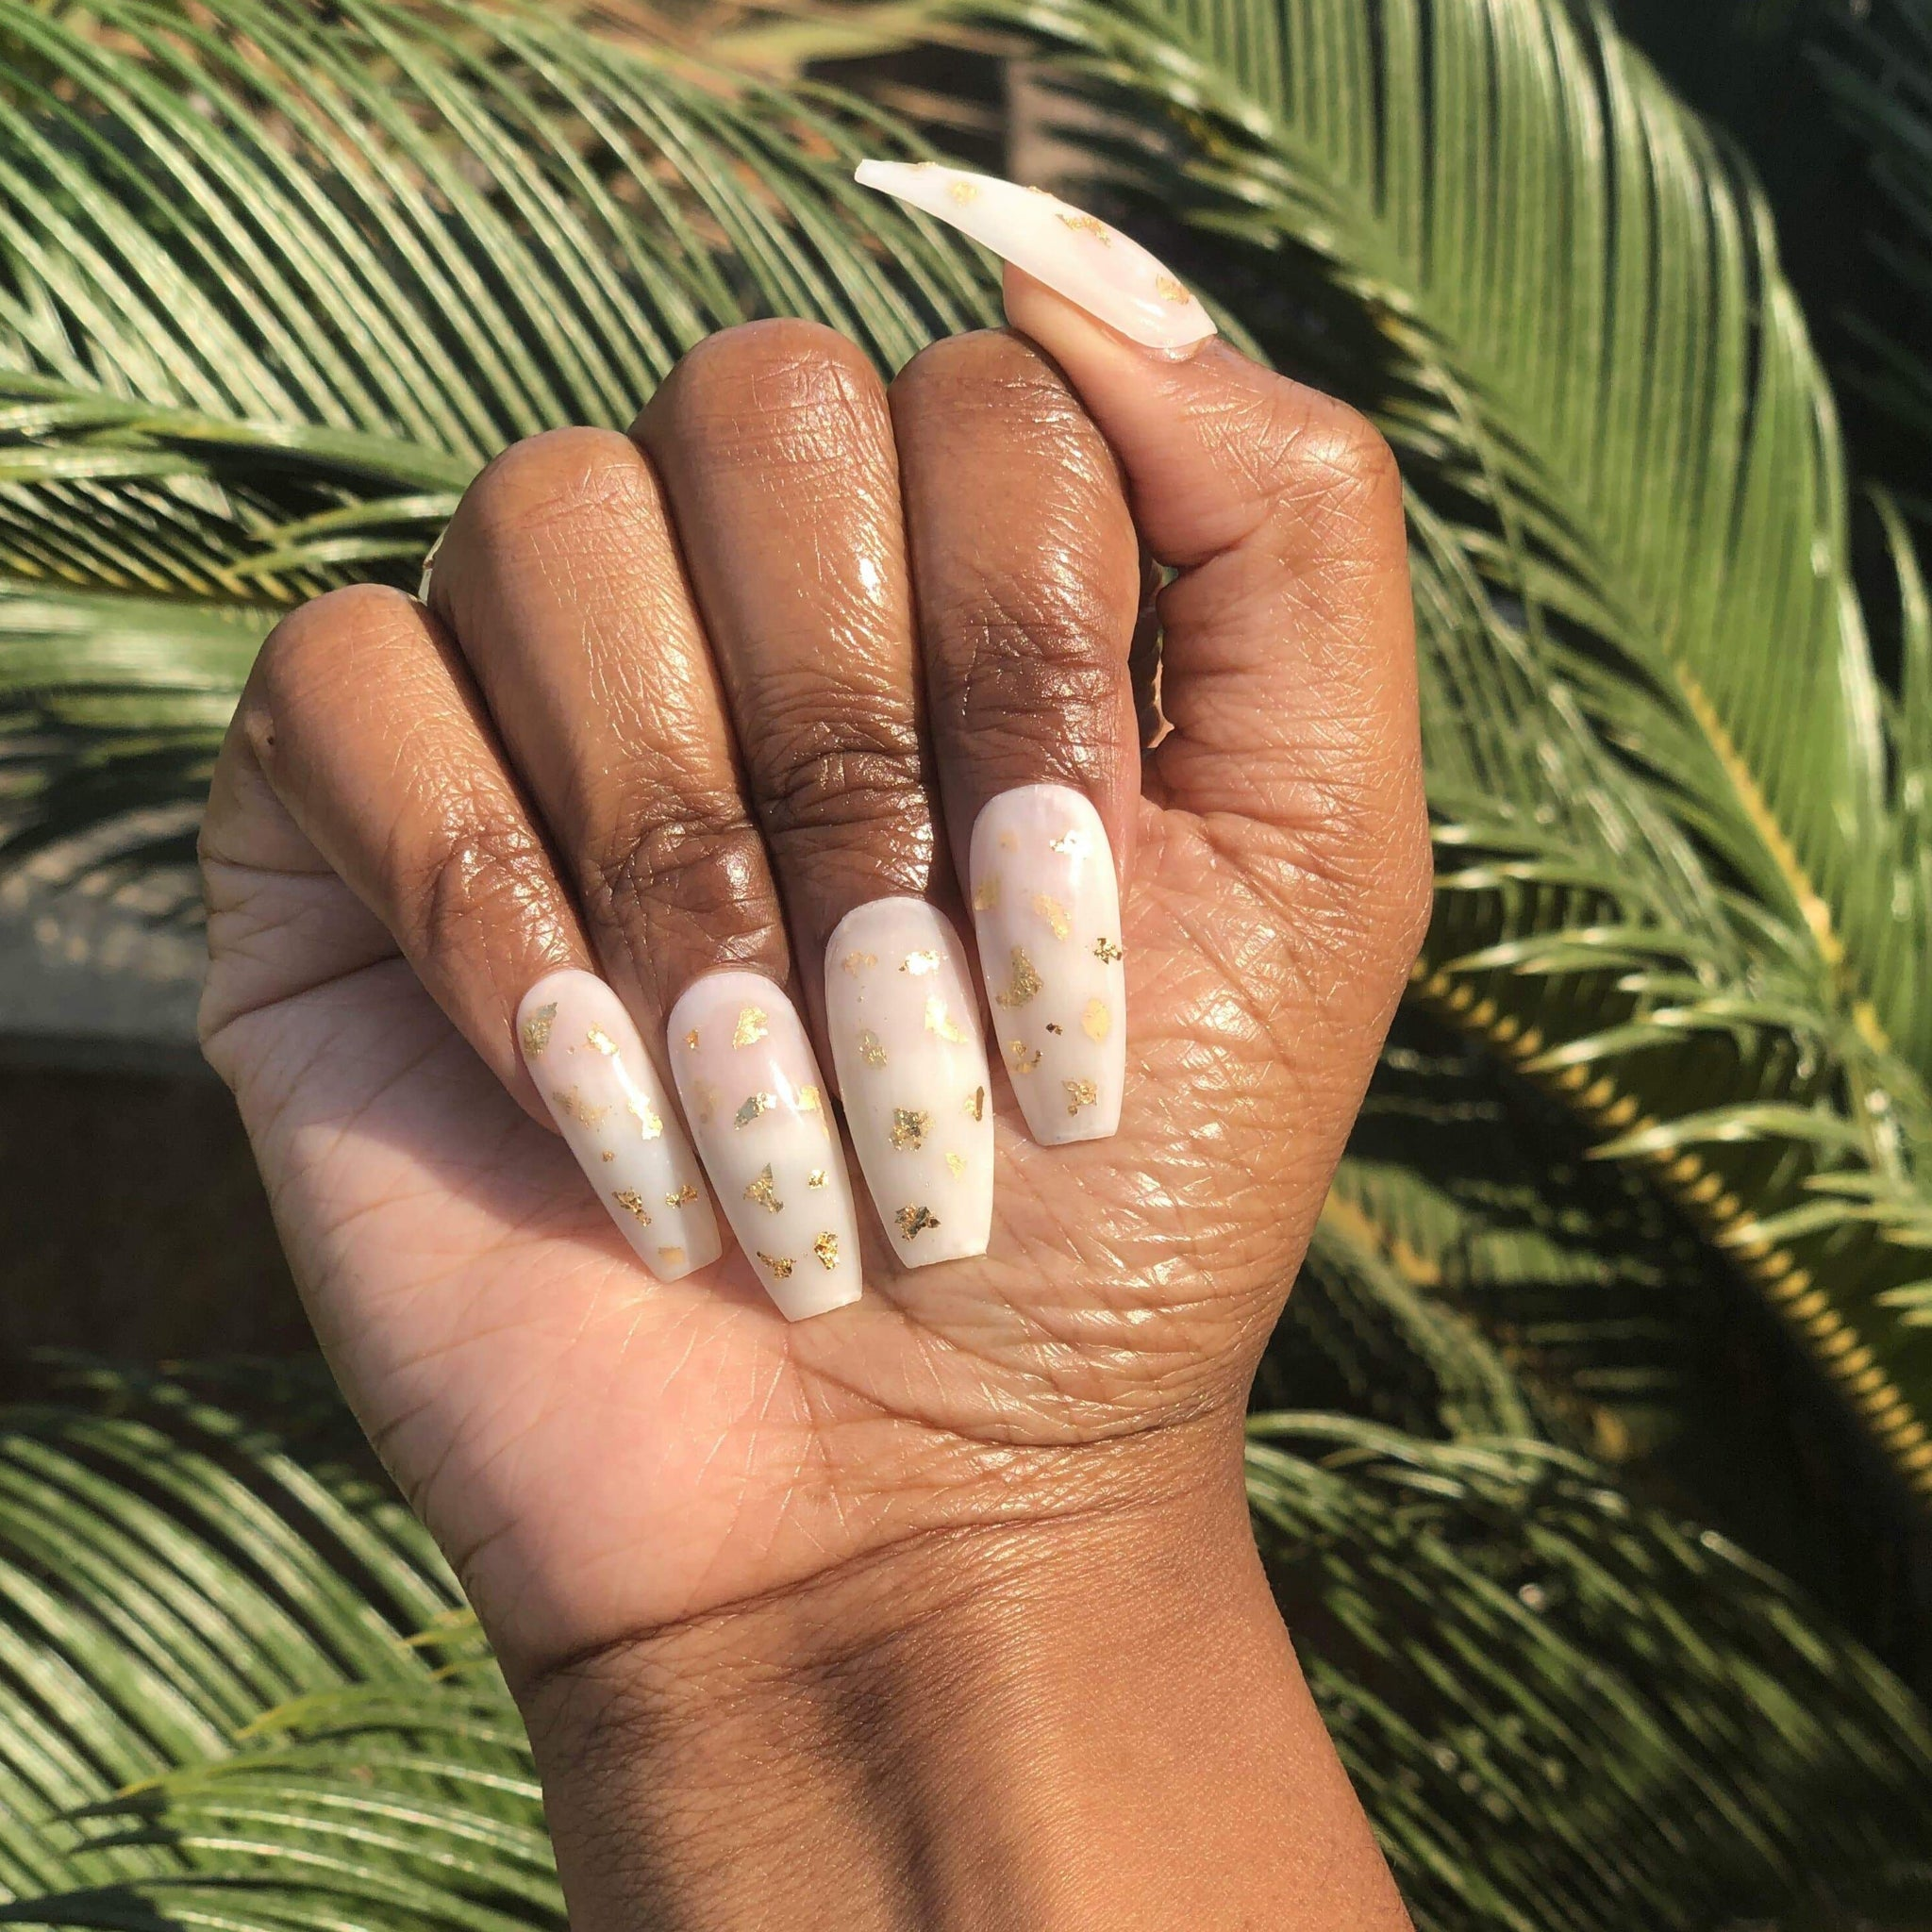 Manicure hand wearing gold foil milk bath press on nails.